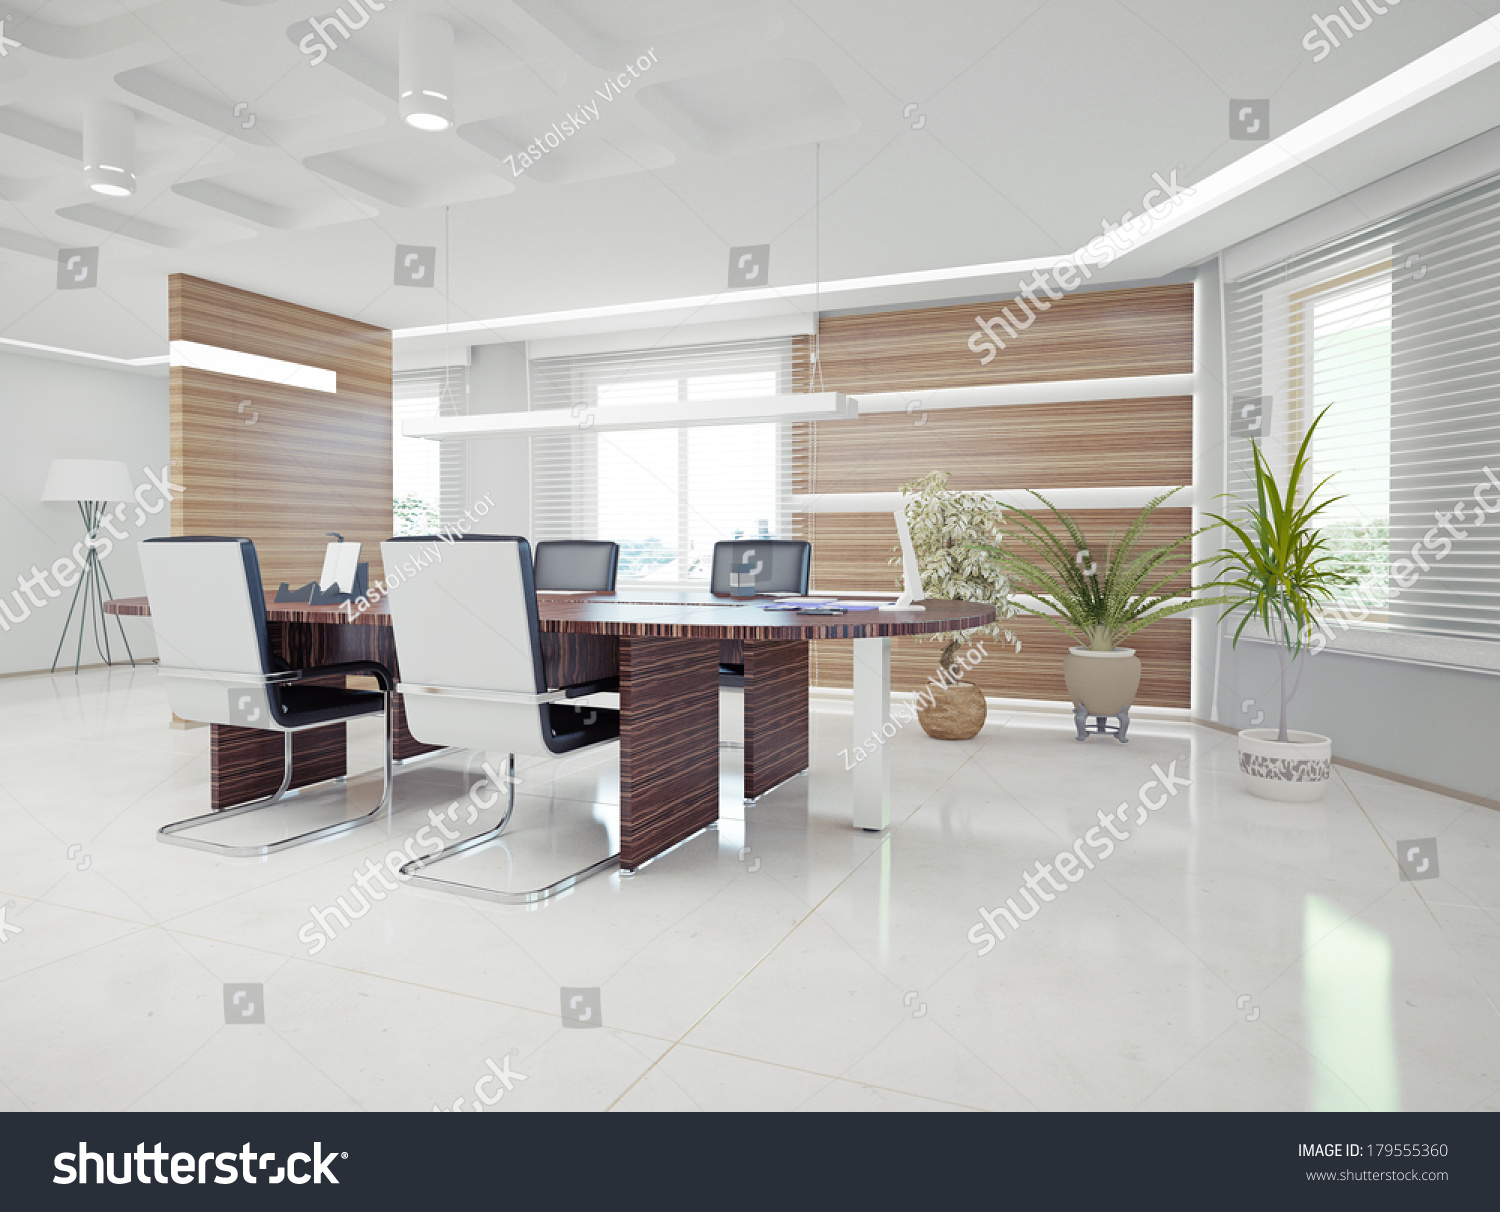 office interior images. Office Interior. Wonderful Modern Interior Design Concept In I Images